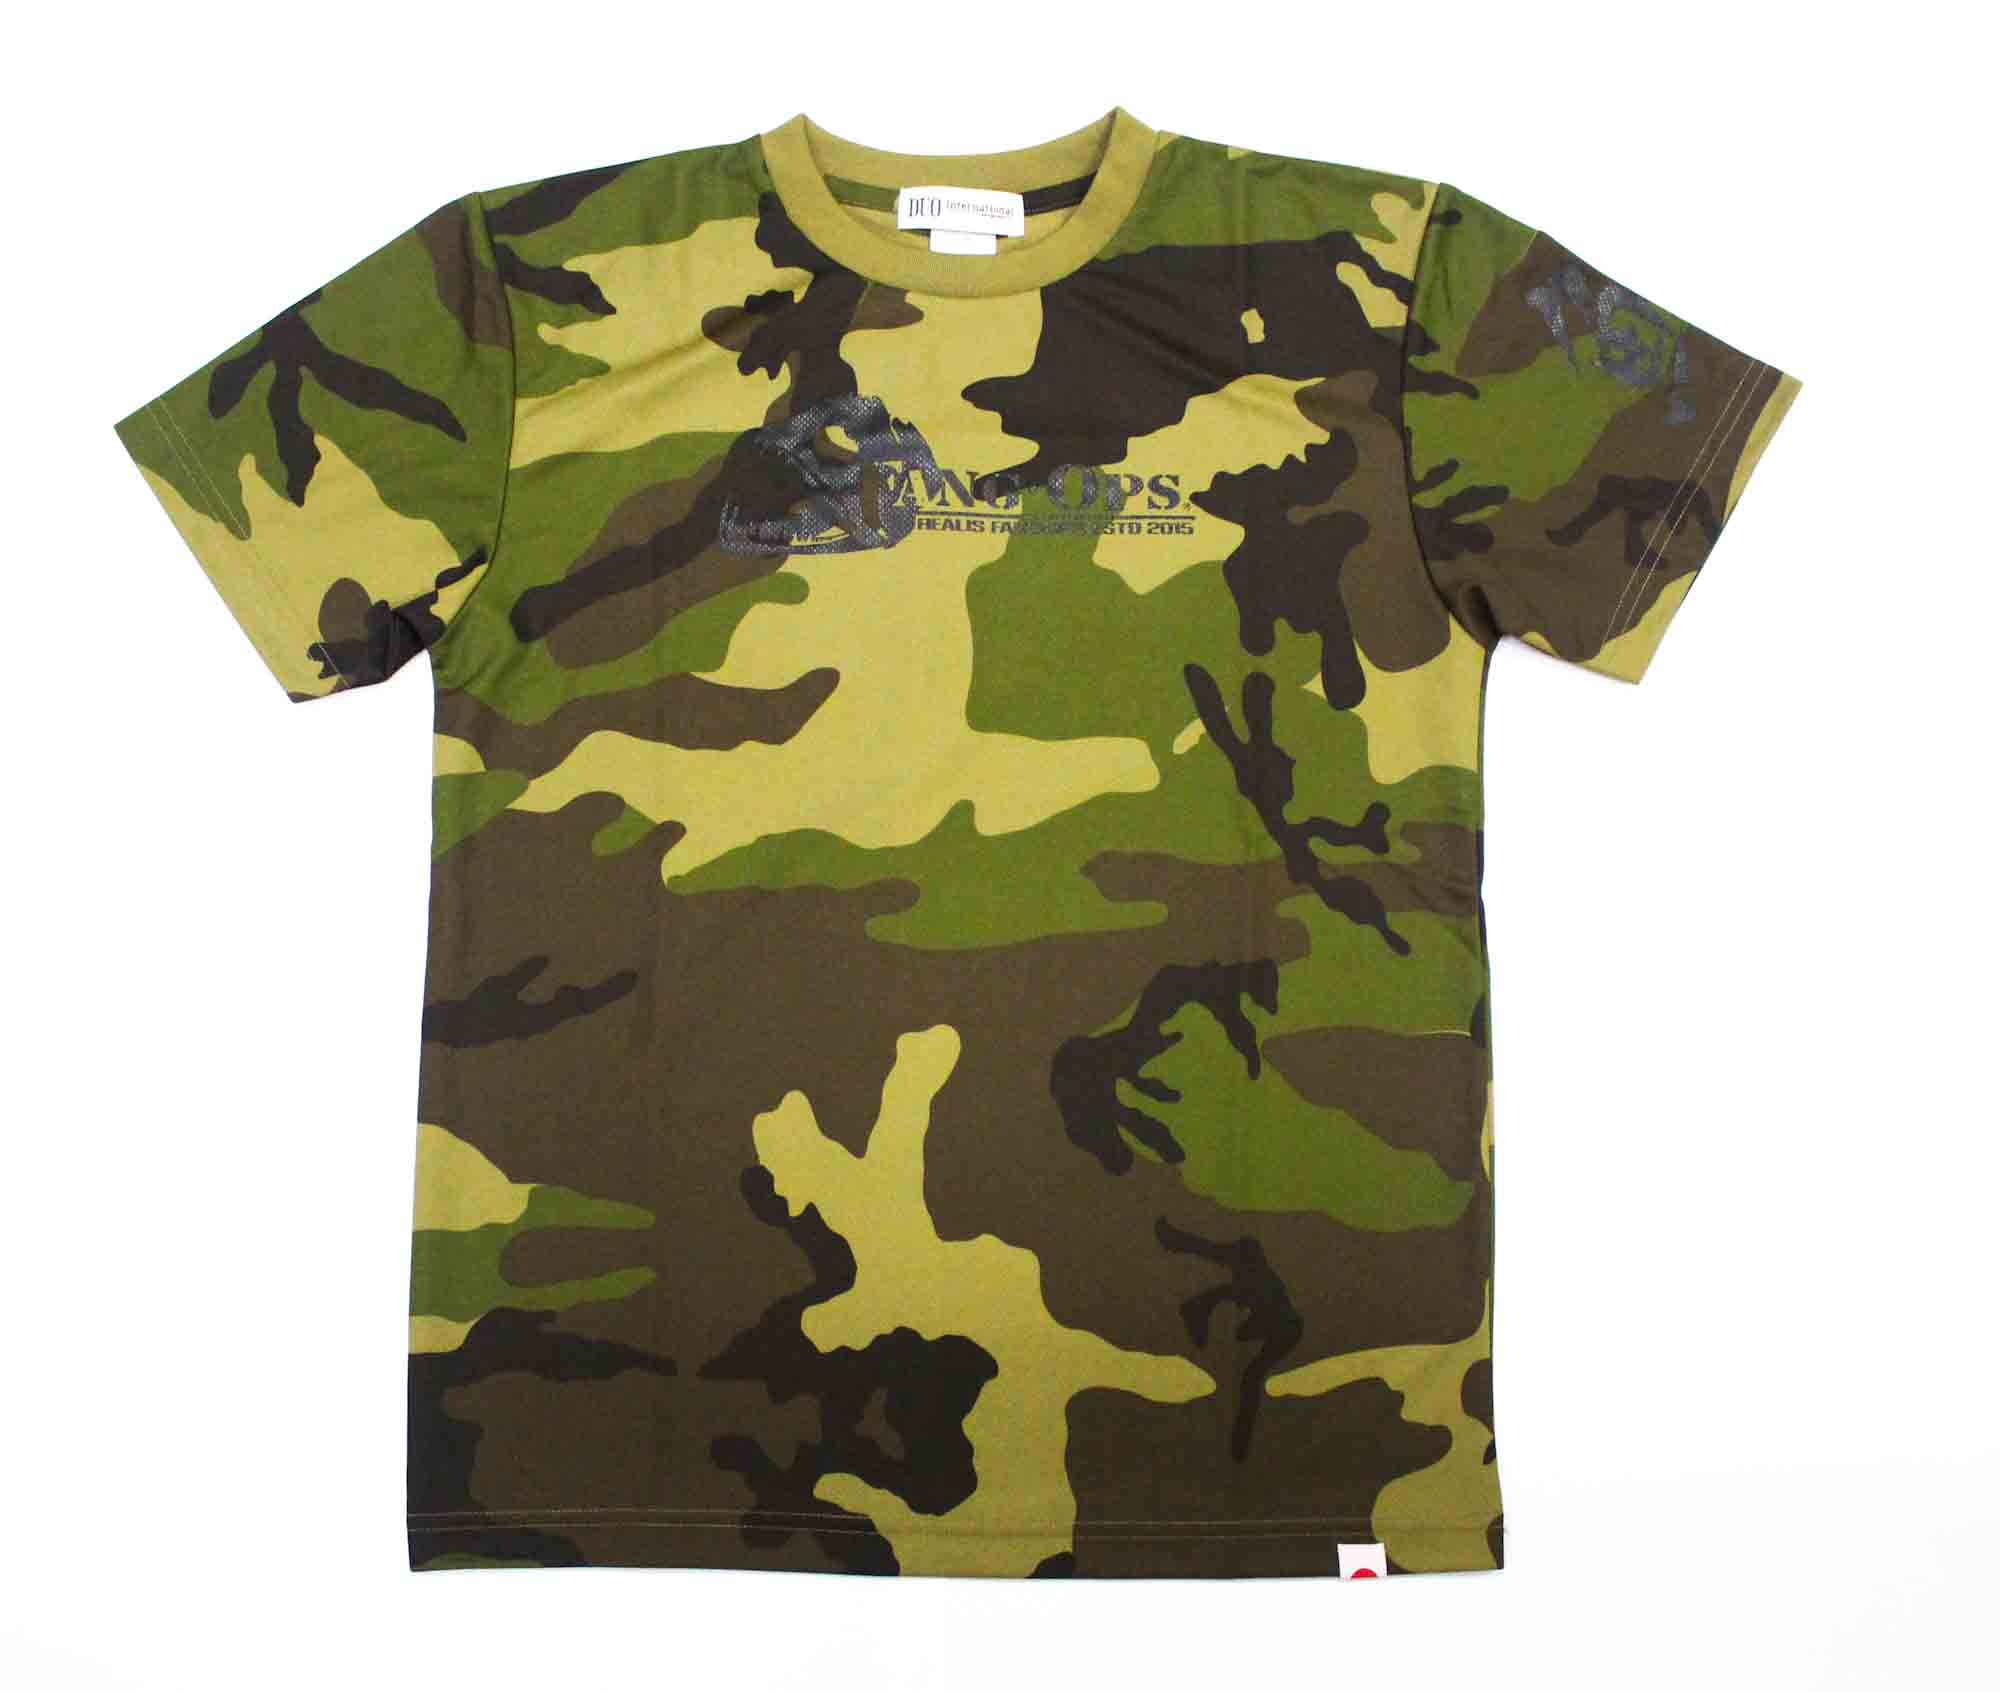 Duo T Shirt Fang Ops Beast Short Sleeve Dry Fit Army Green Size L (1478)